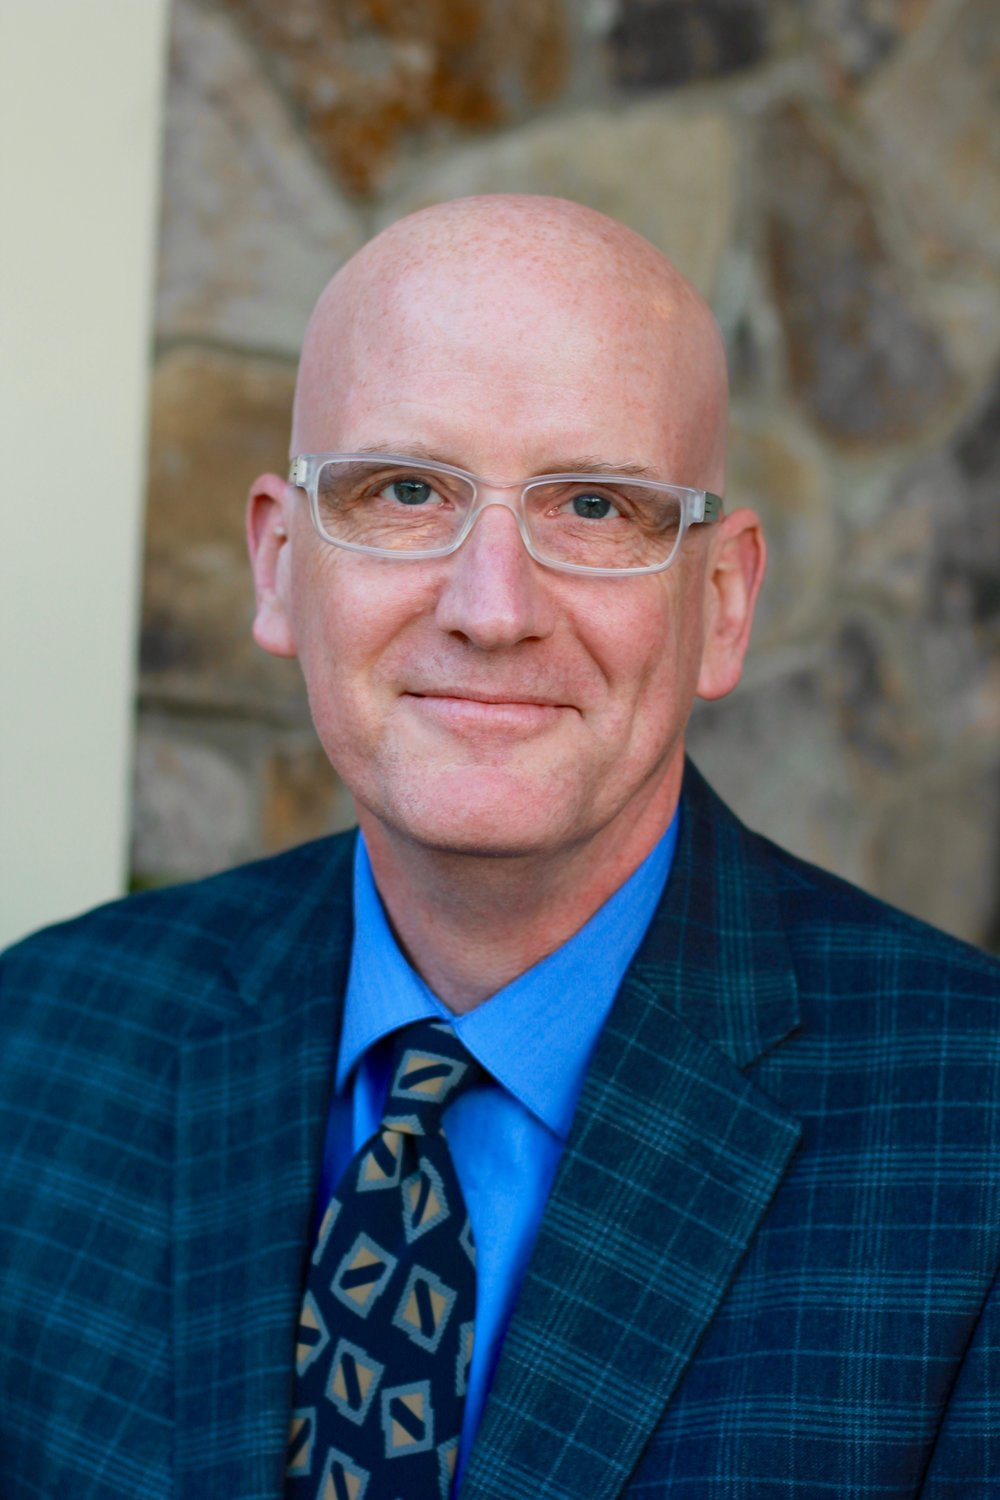 Daniel Willingham,Psychology Professor at University of Virginia and Author of Why Don't Students Like School?,When Can You Trust the Experts?,Raising Kids Who Read. and The Reading Mind.